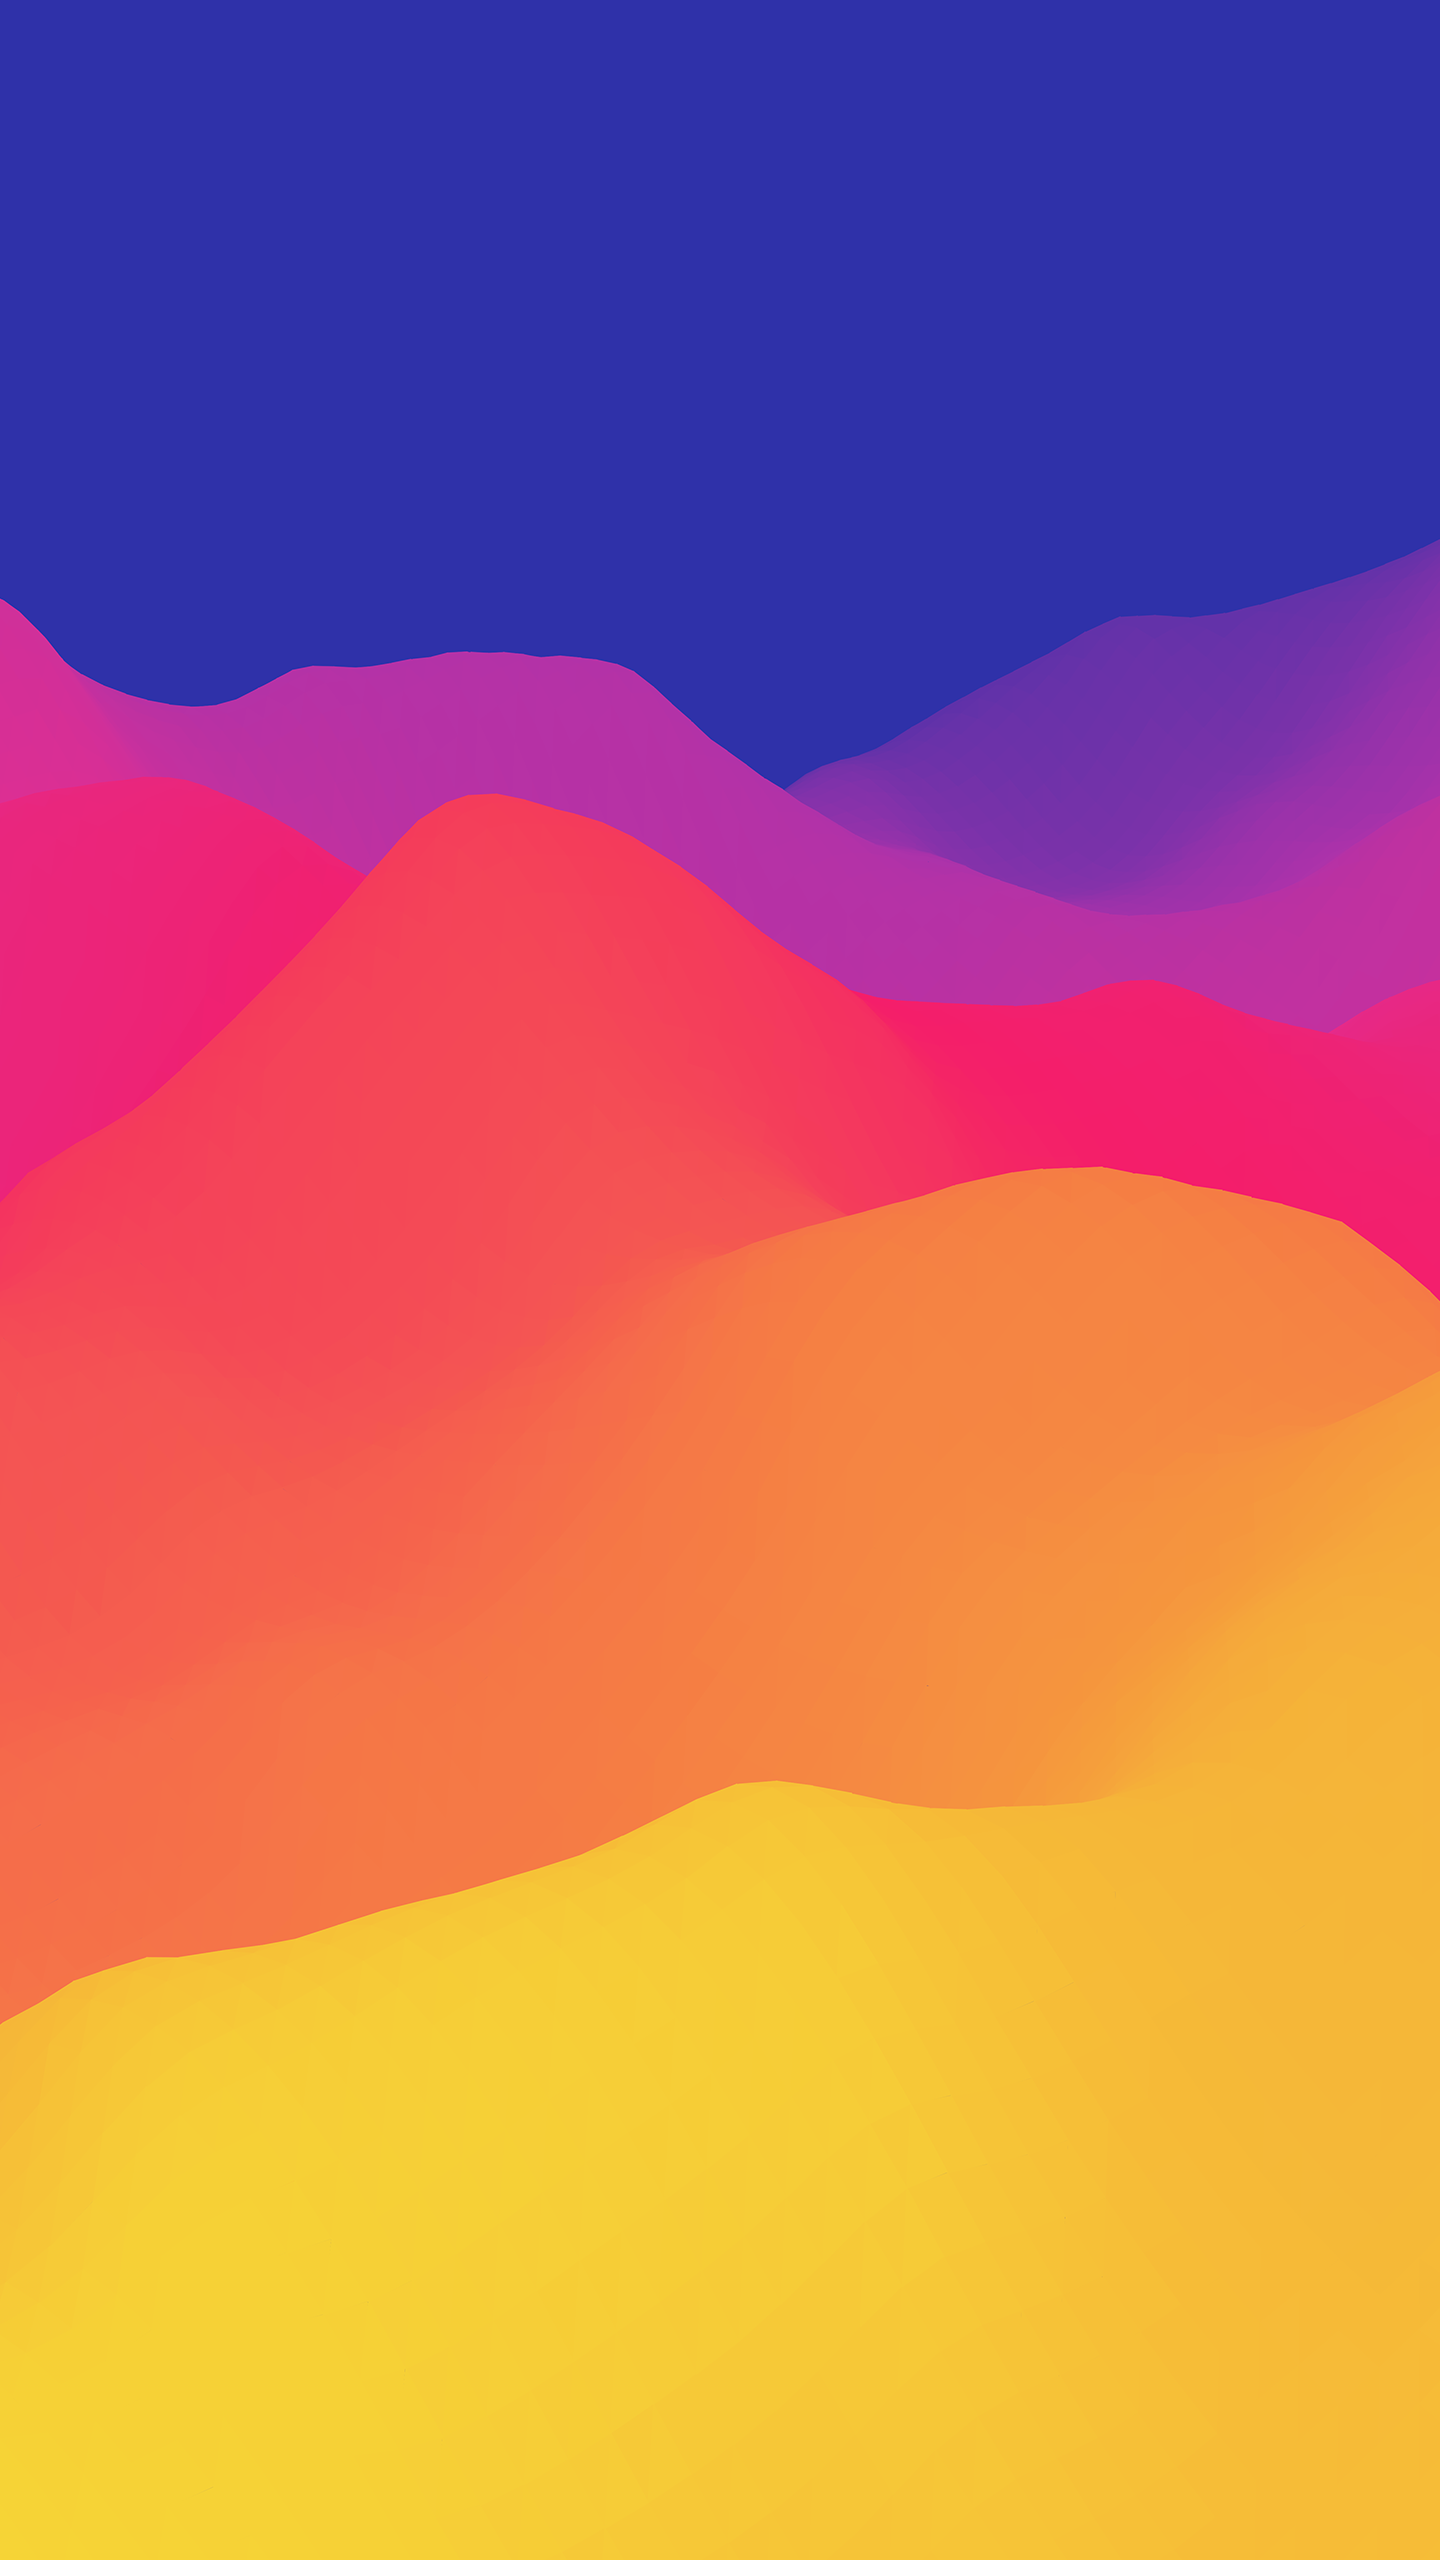 Download Meizu FlymeOS 7 Stock Wallpapers | DroidViews